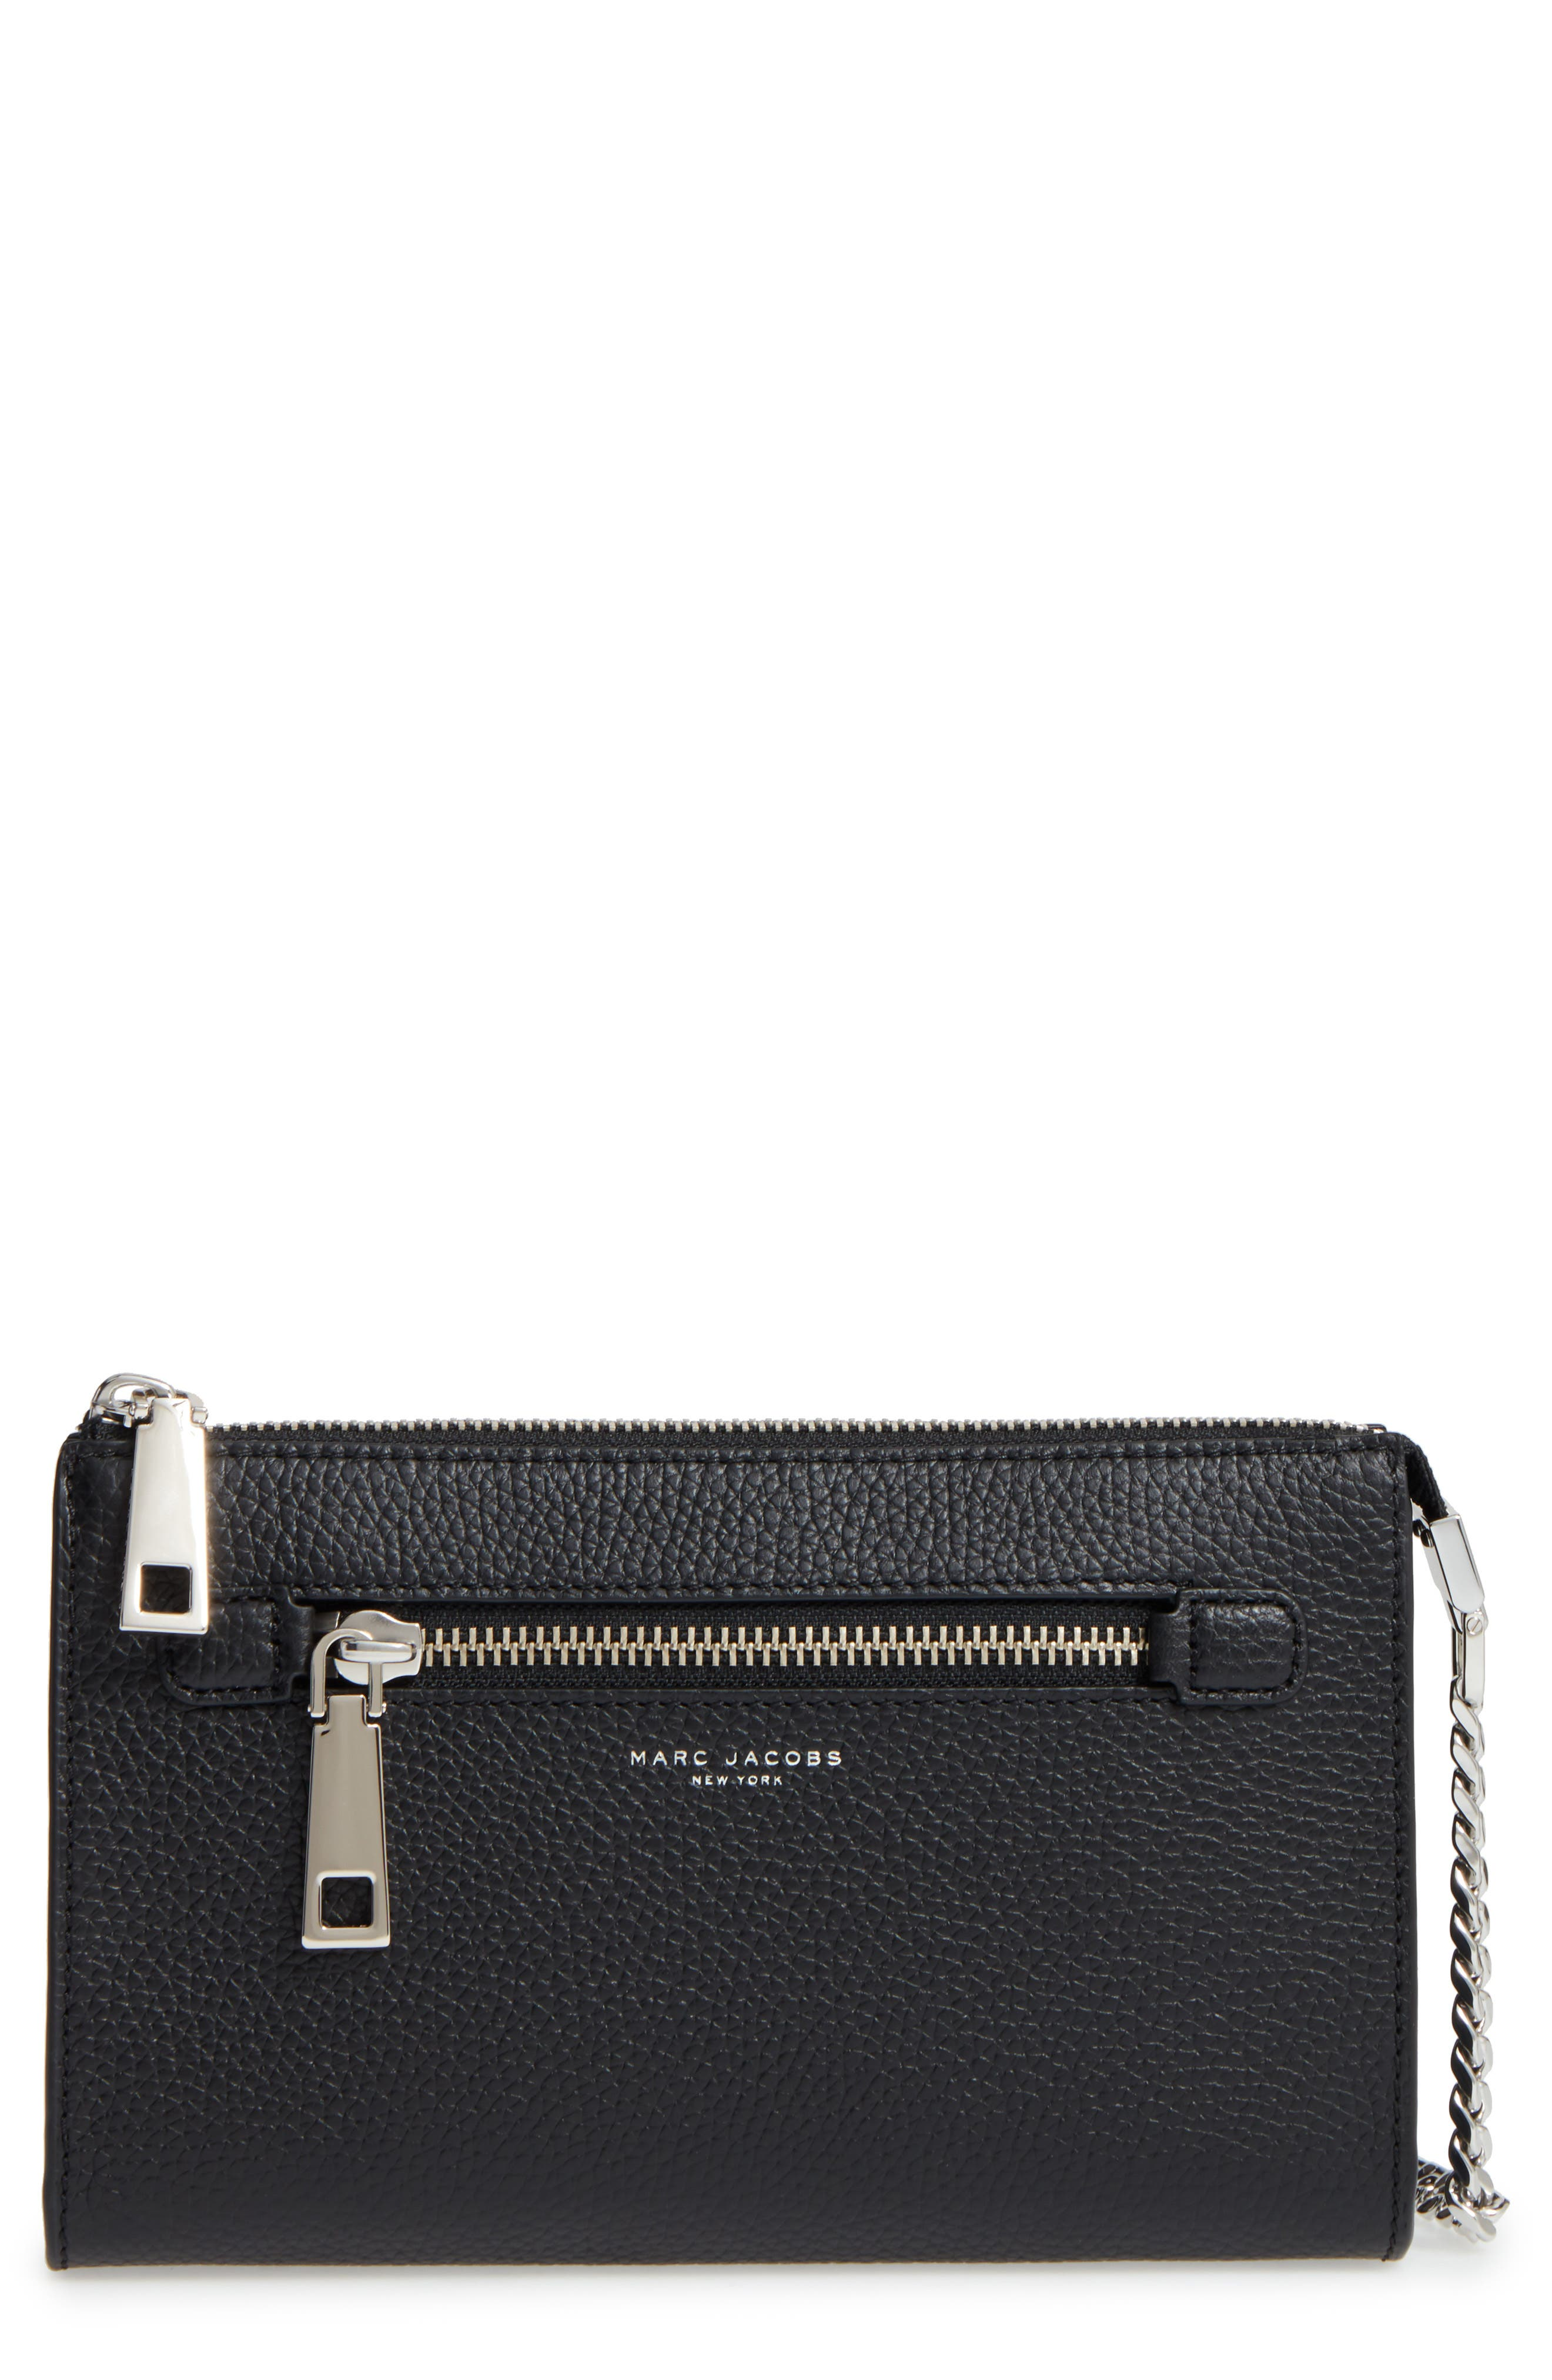 Main Image - MARC JACOBS Small Gotham Leather Crossbody Wallet (Nordstrom Exclusive)